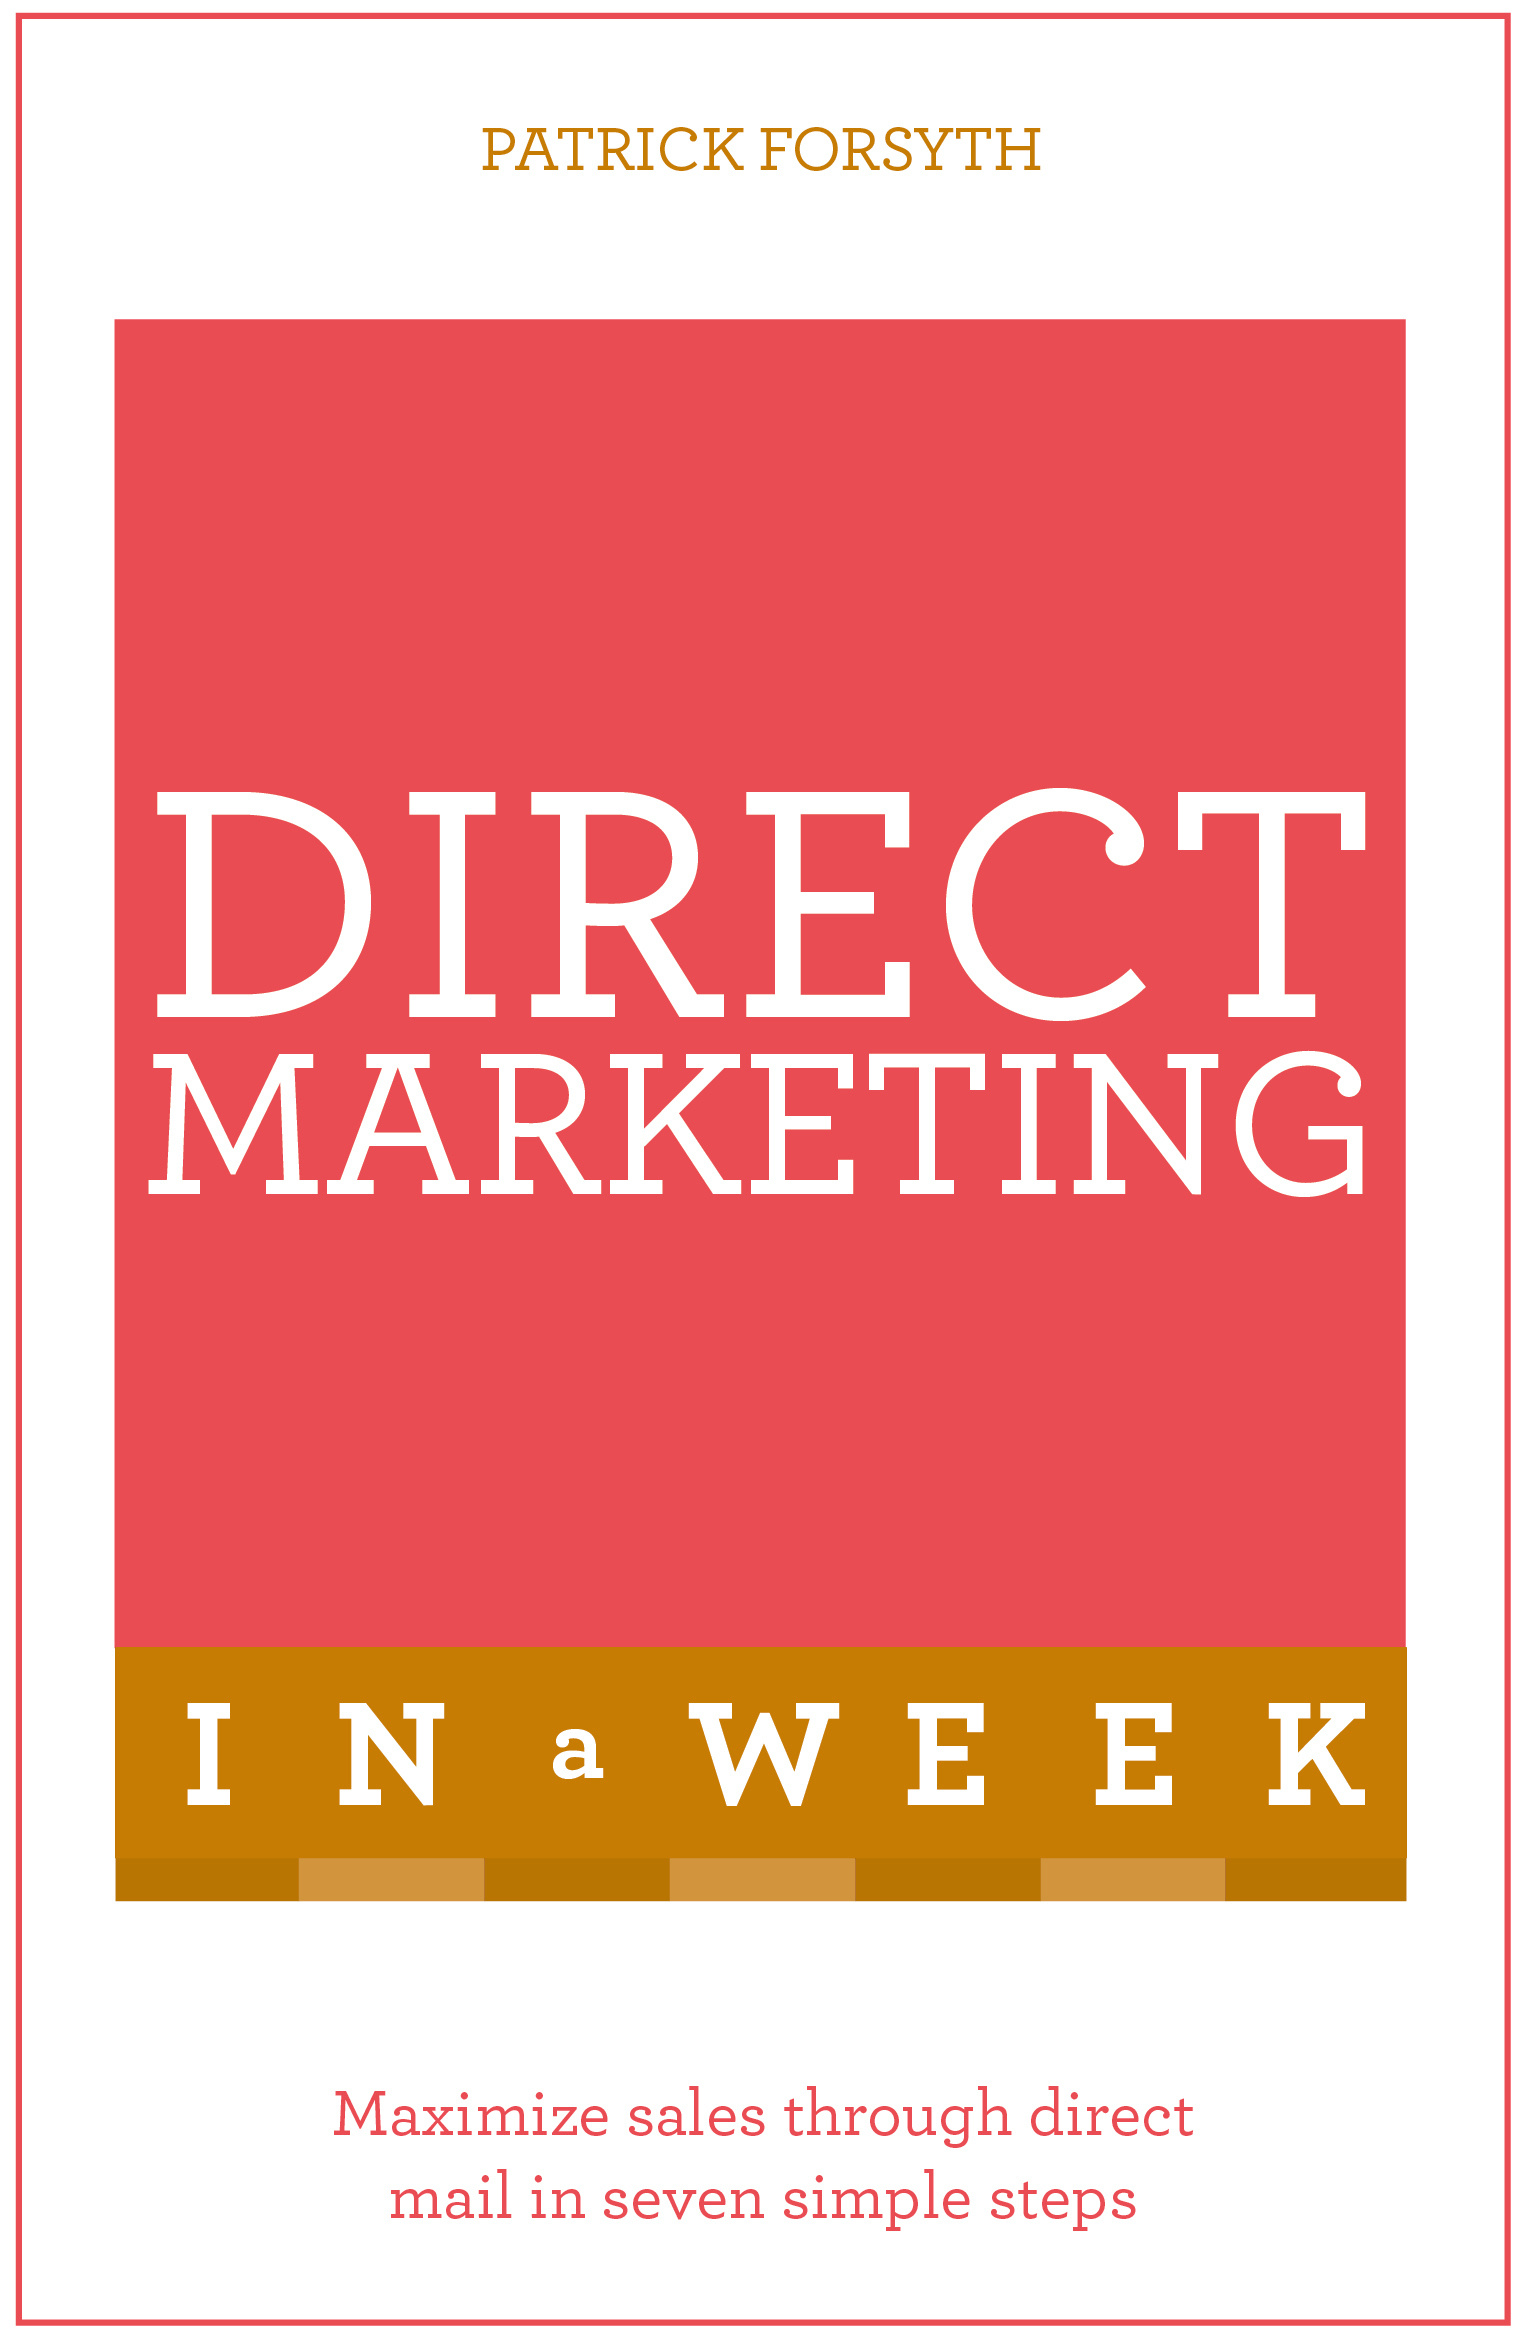 why direct marketing has been so successful